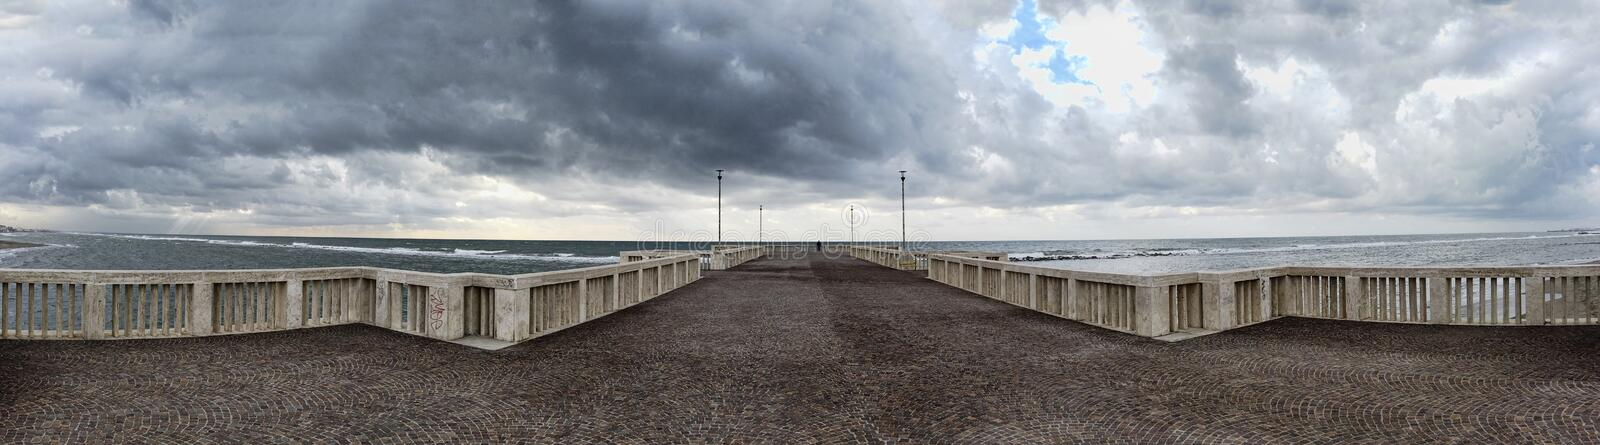 Panorama from the jetty to rough sea with scenic sky covered by clouds ready for the rain at distance a man alone looking the sea royalty free stock photos